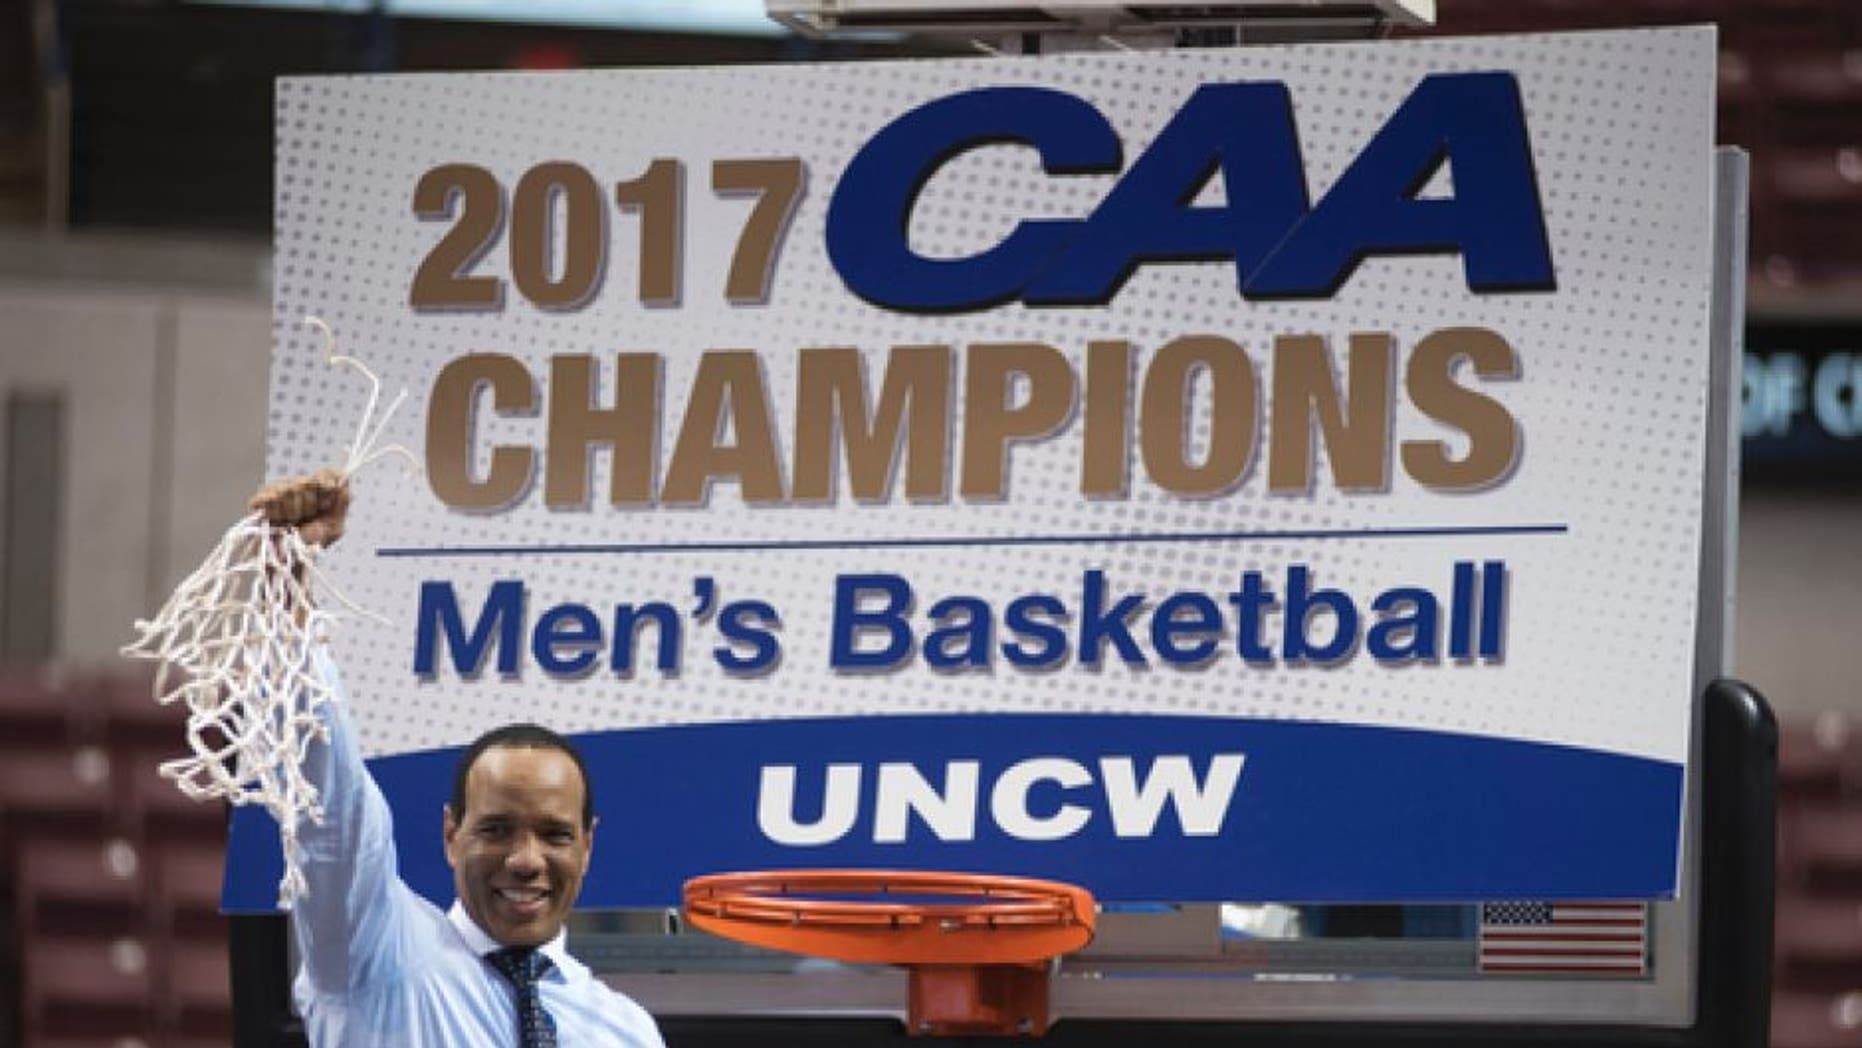 UNCW head coach Kevin Keatts cuts down the net after defeating College of Charleston 78-69 in an NCAA college basketball game in Charleston, S.C., Monday, March 6, 2017. (AP Photo/Mike Spencer)